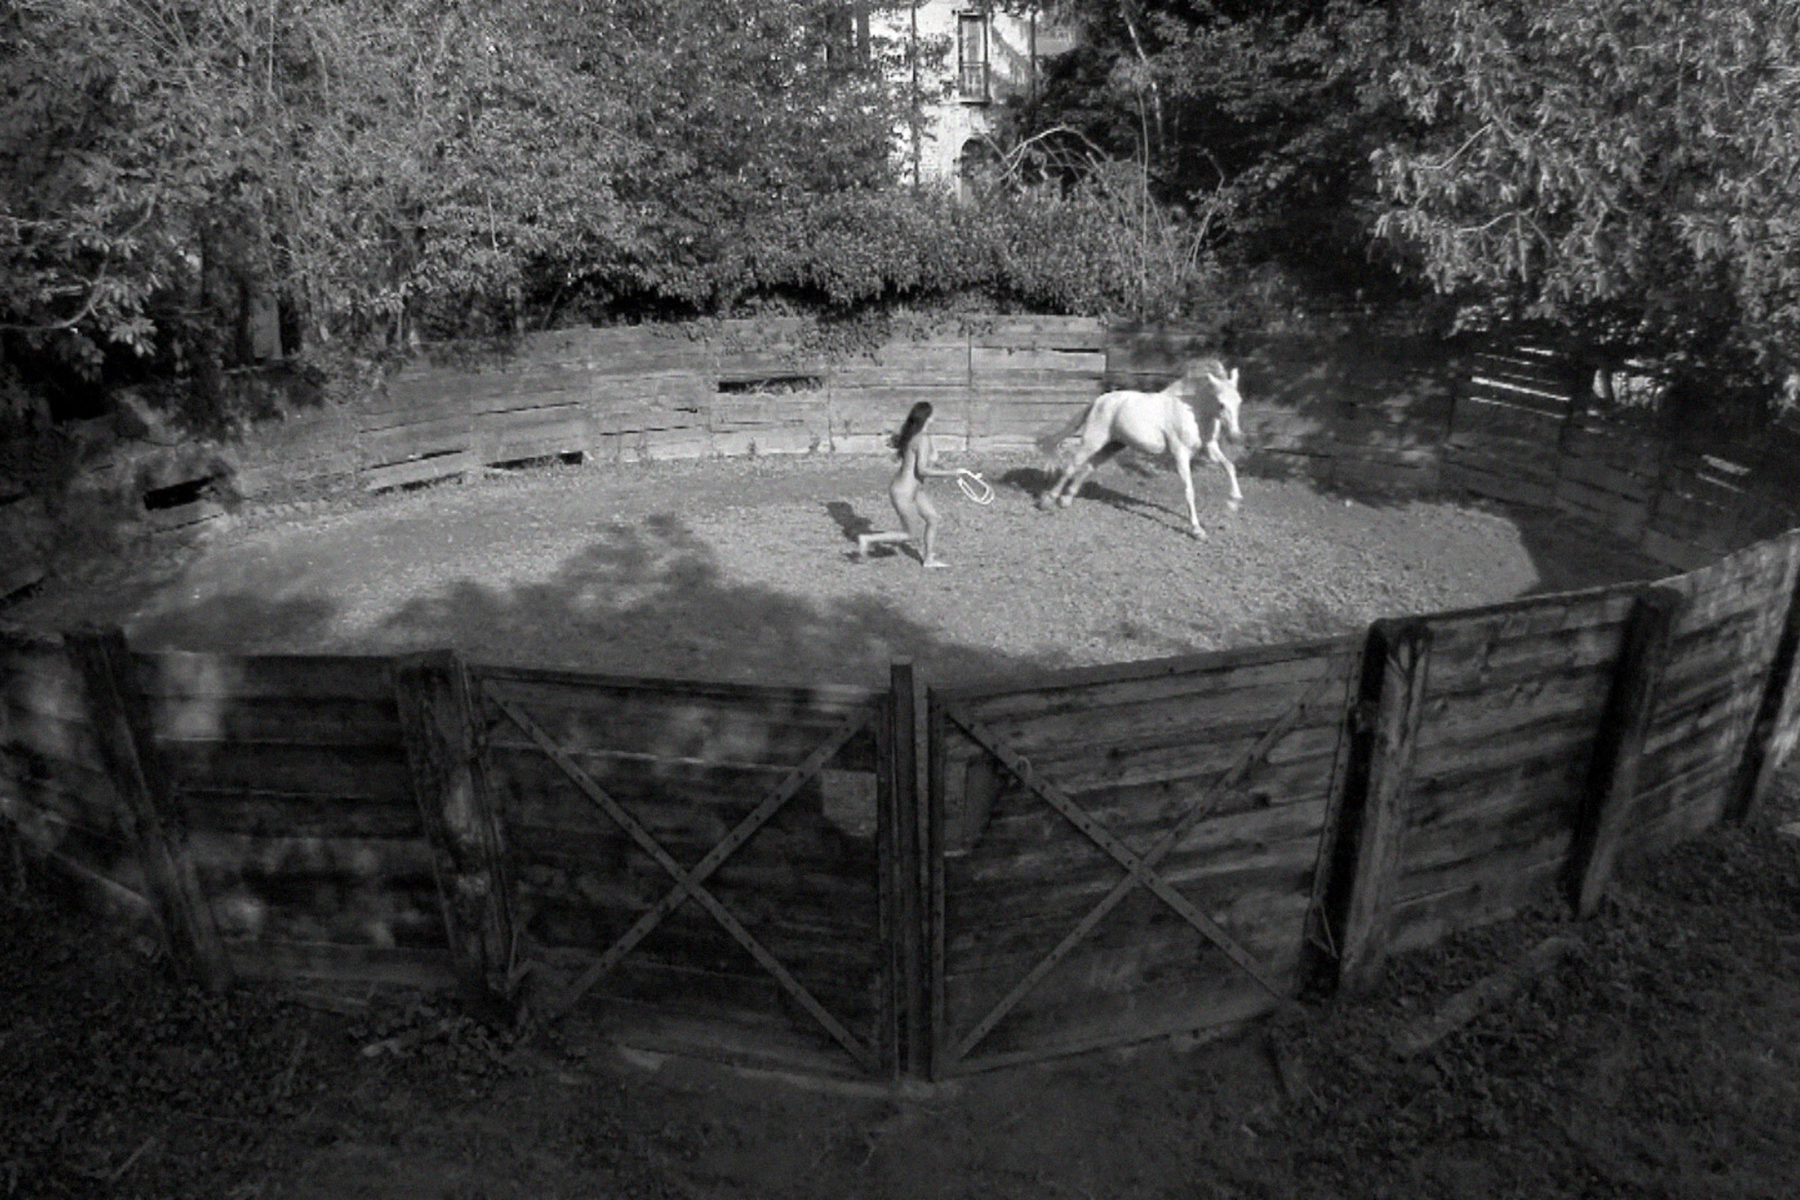 "A. Paci, Inside the Circle, 2011, video, 6'33"", loop, courtesy the artist and Kaufmann Repetto, Milan"